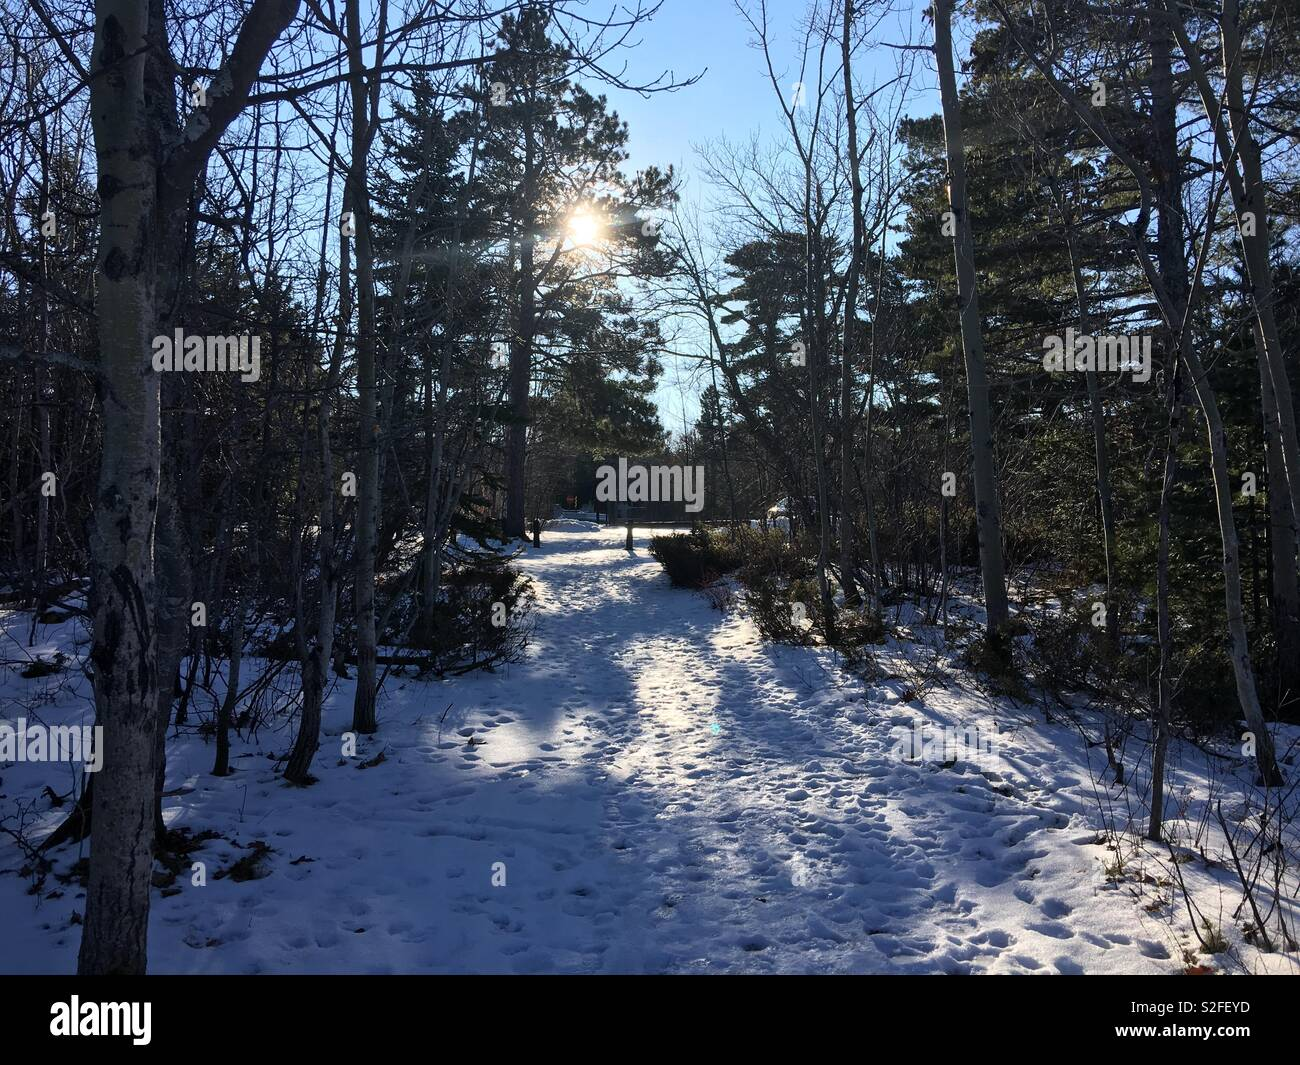 Low winter sun through bare trees and conifers backlights footprints in snow - Stock Image